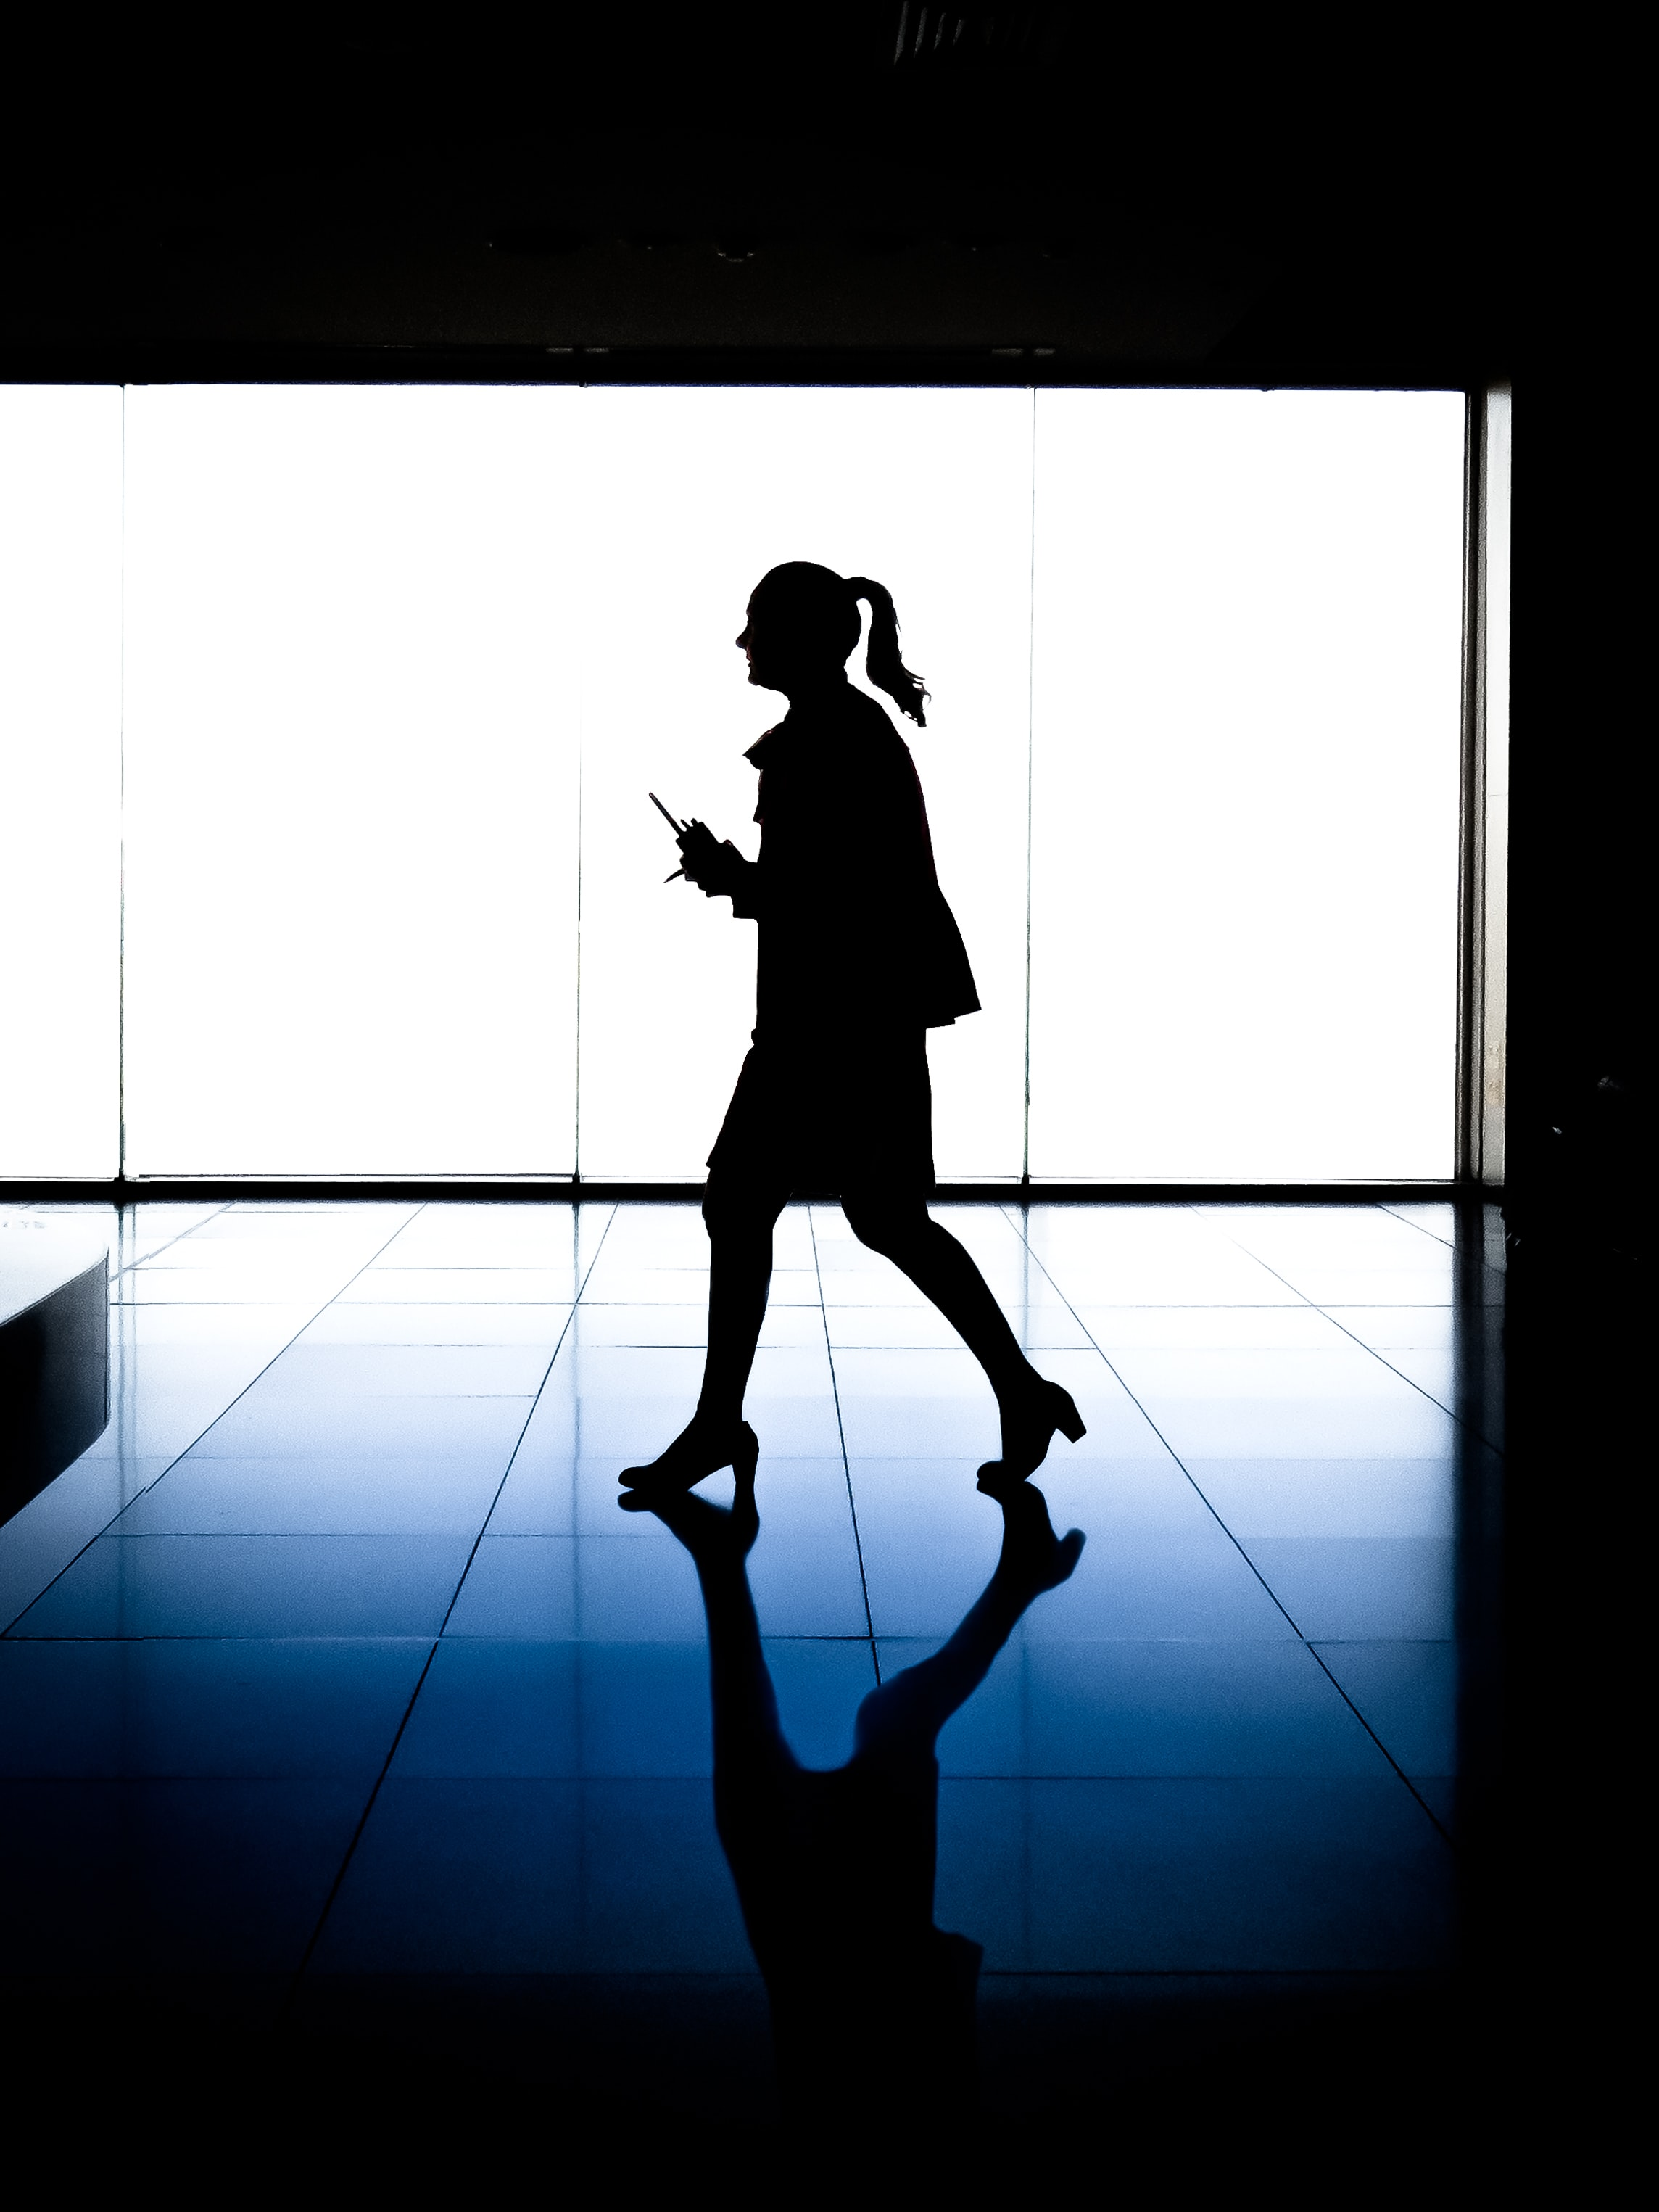 silhouette of woman walking inside building